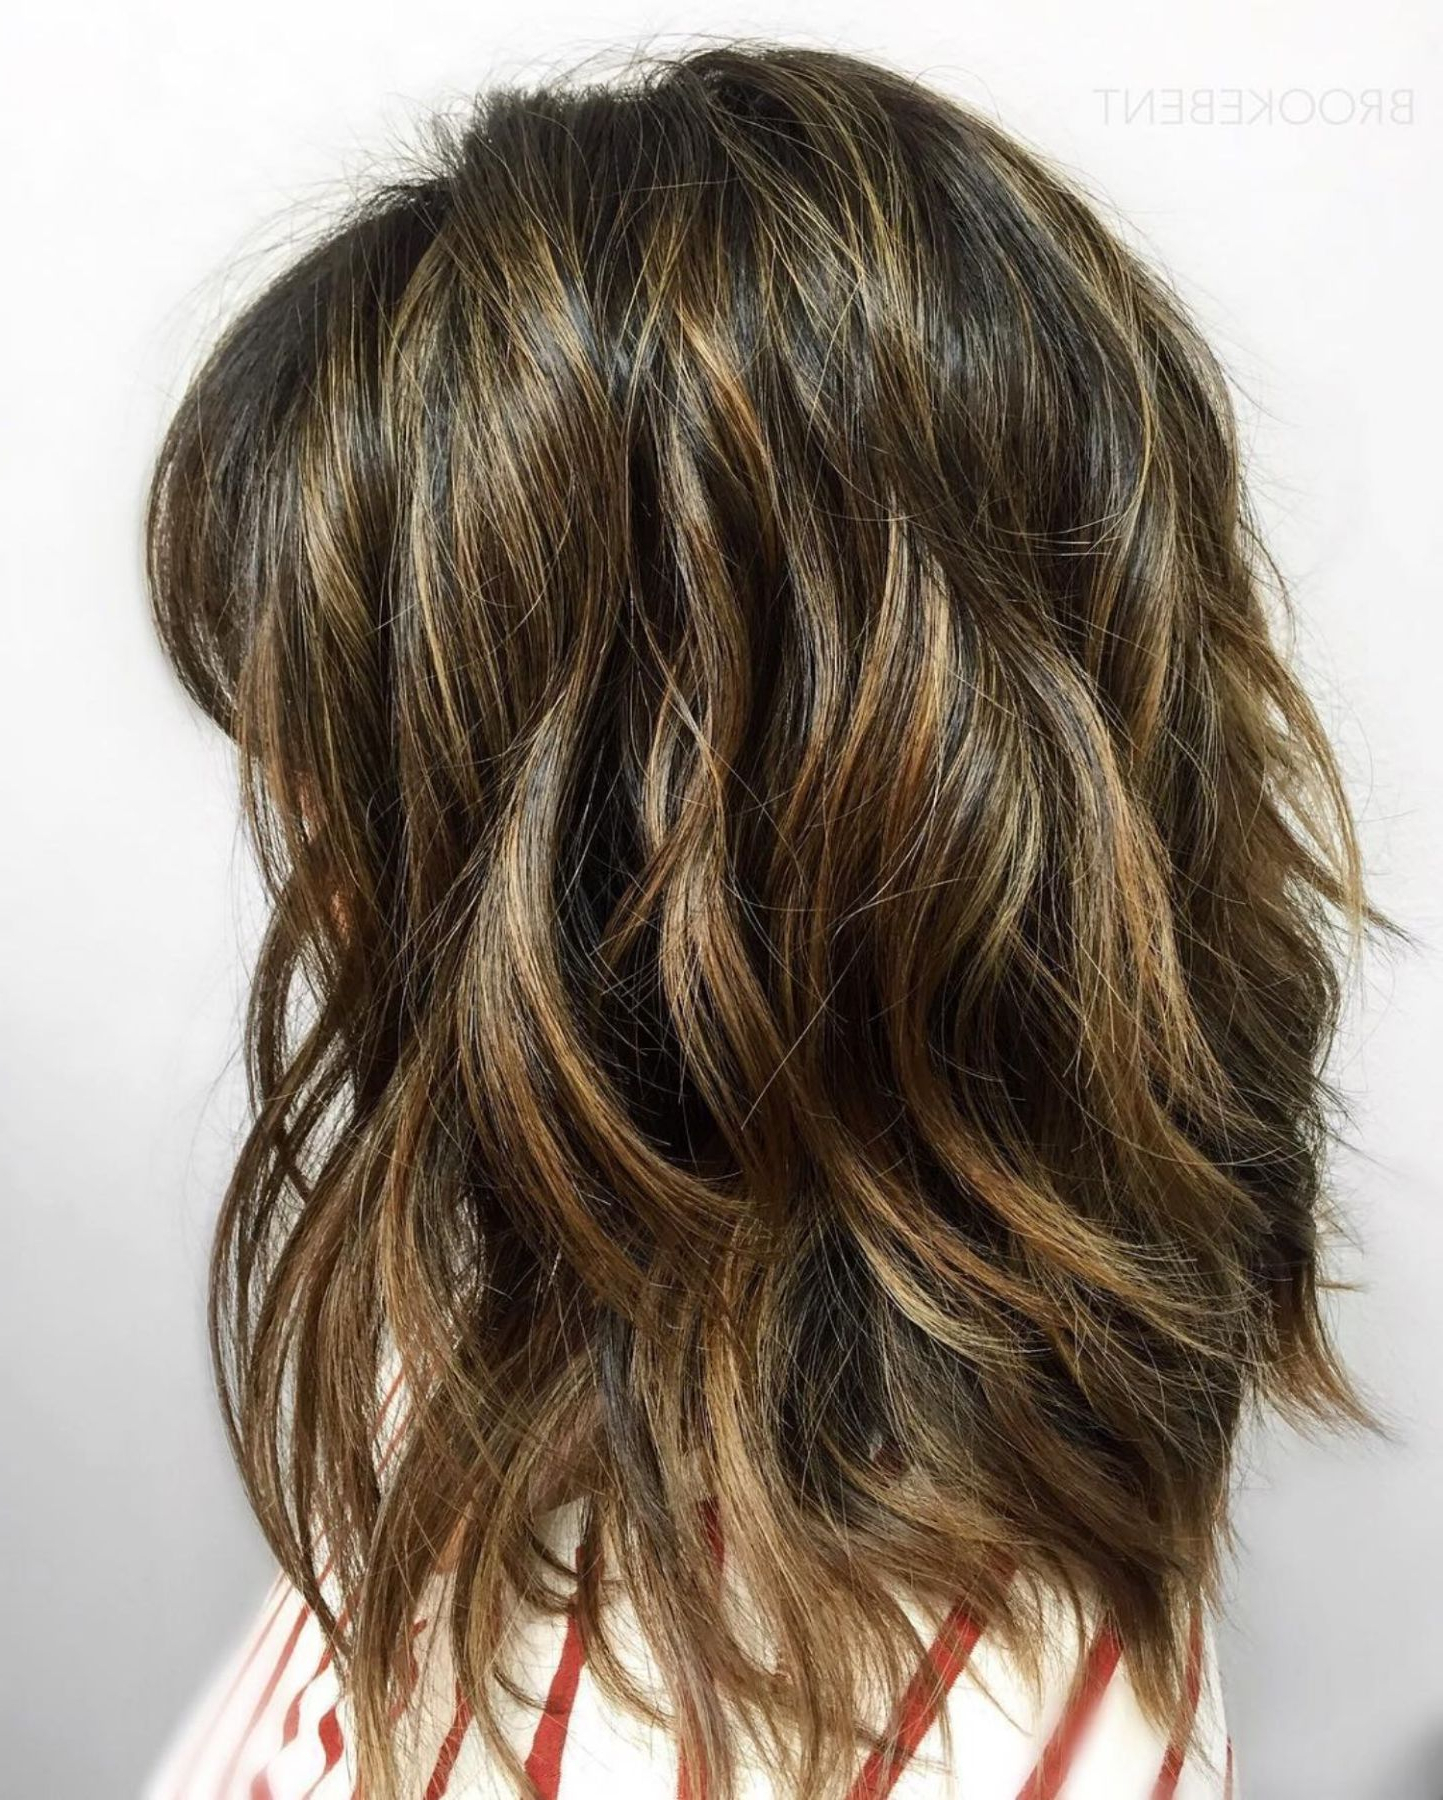 70 Brightest Medium Layered Haircuts To Light You Up In 2019 Pertaining To 2020 Voluminous Layers Under Bangs Hairstyles (Gallery 7 of 20)